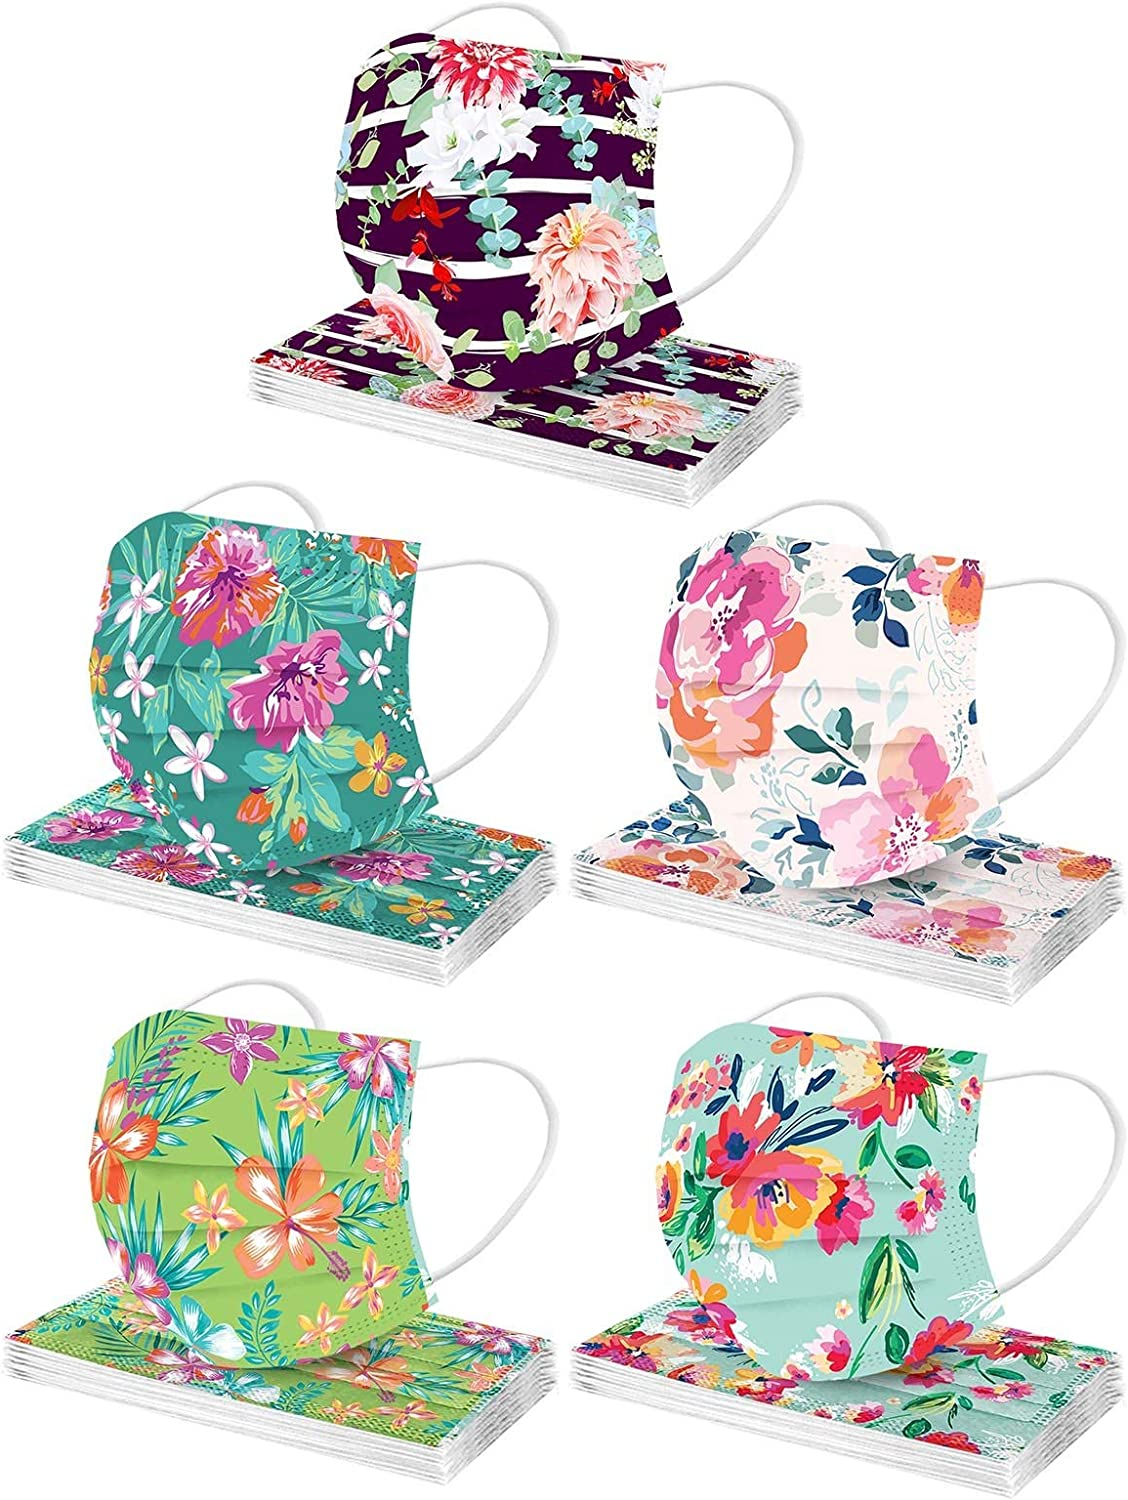 3Ply Adult Disposable Nonwoven Floral Pattern Print Face_Mask,50PC Protective Face Covering Fashion Balaclava Women